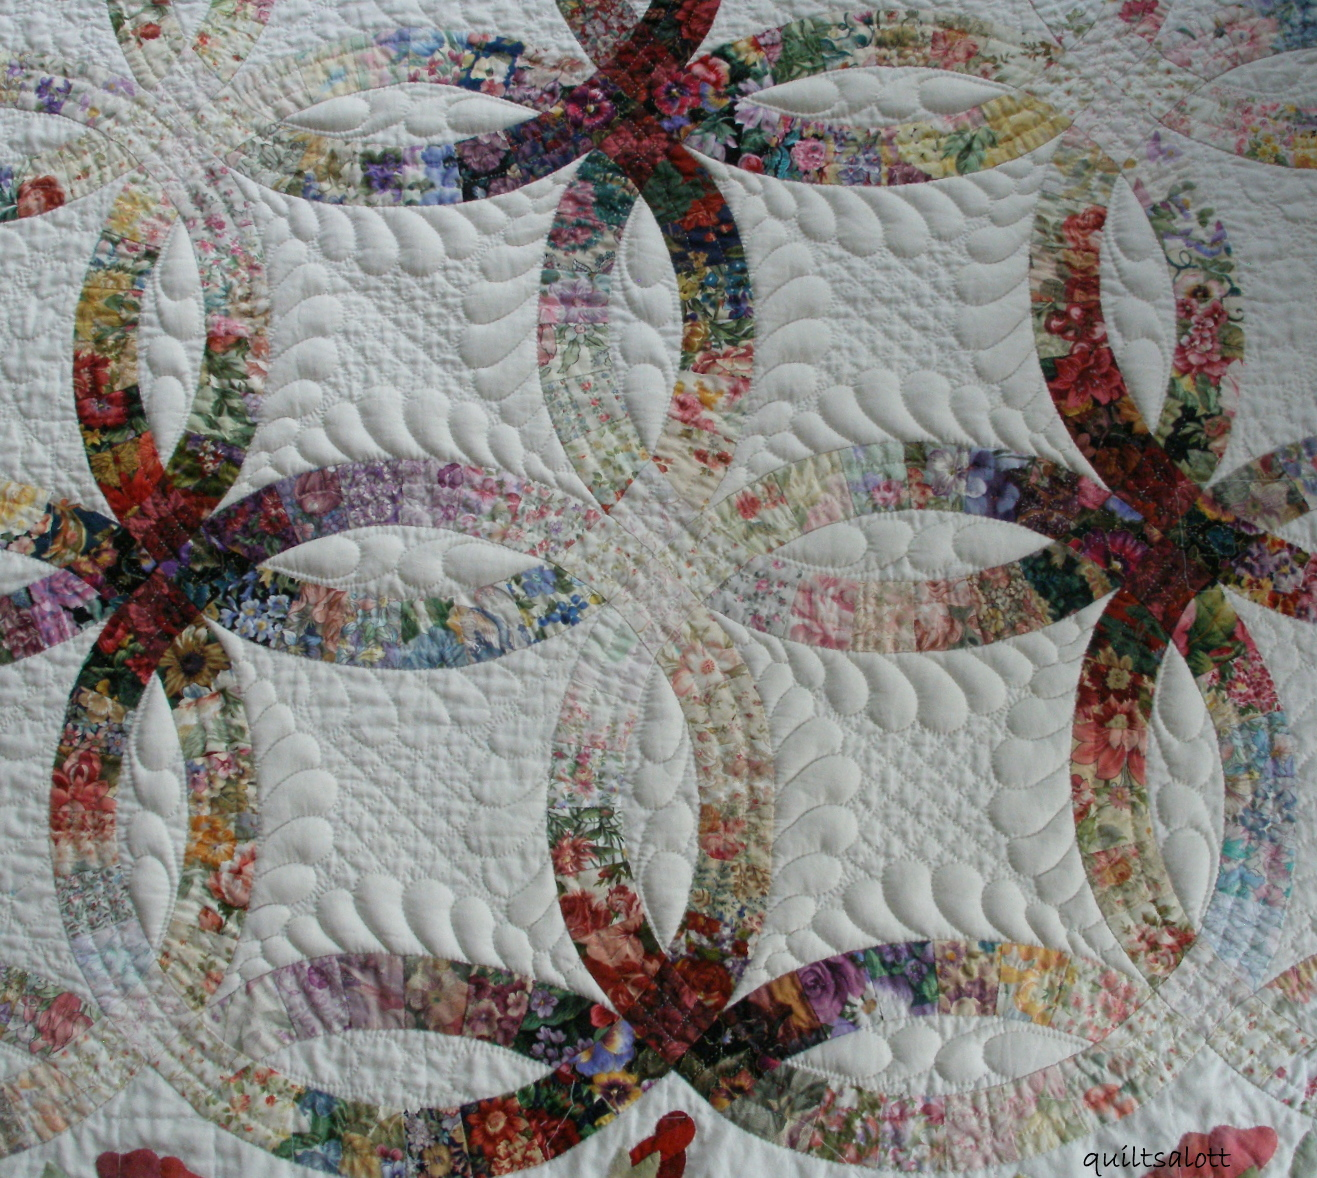 Quilting Designs For Wedding Ring Quilts : Quiltsalott: Trapunto by hand